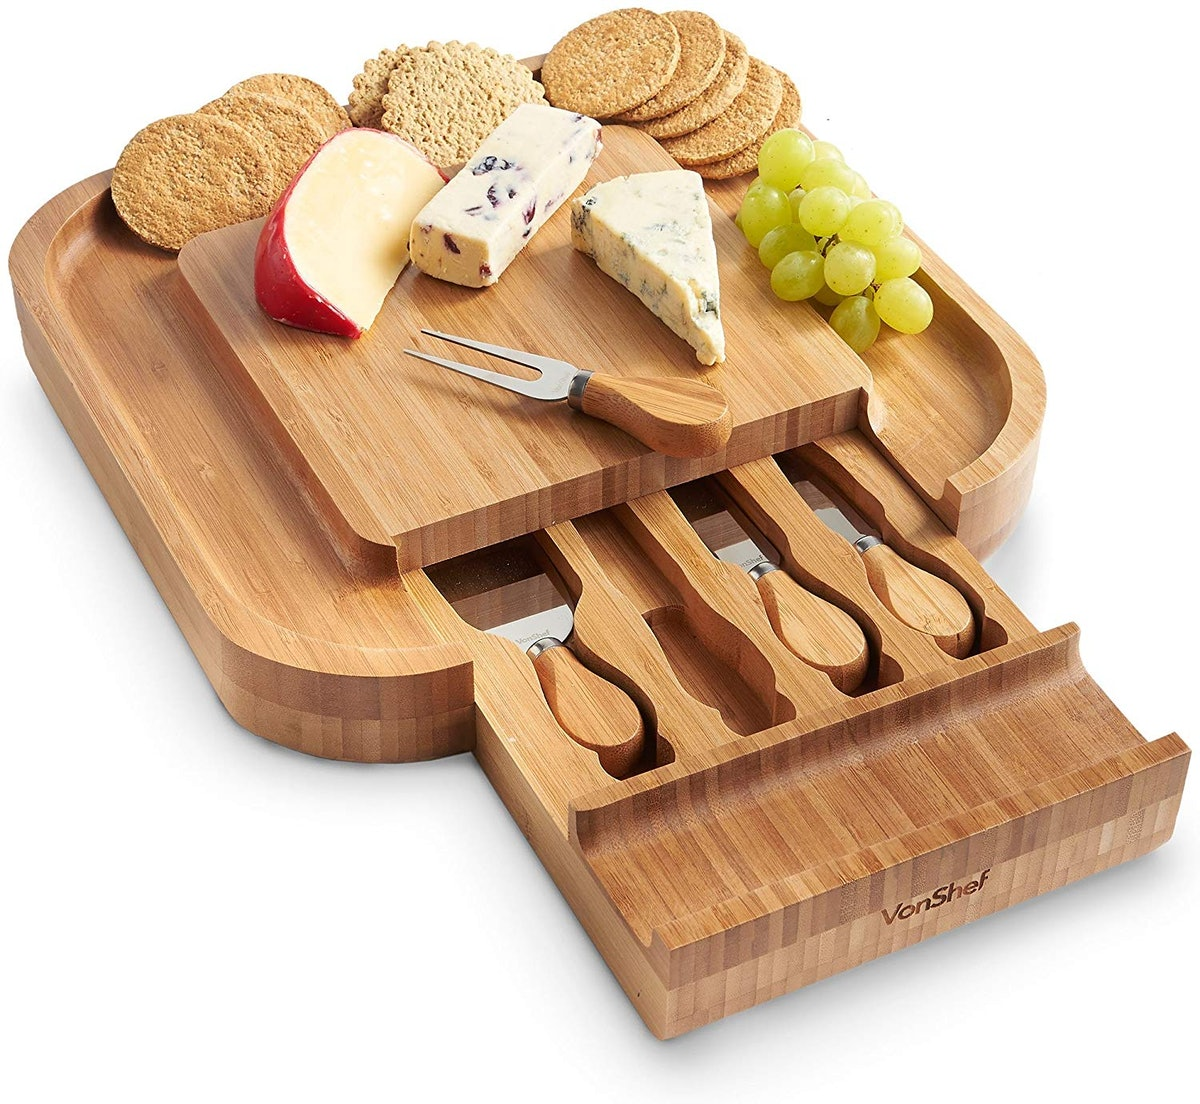 VonShef Square Bamboo Cheese Board (4-Piece Set)